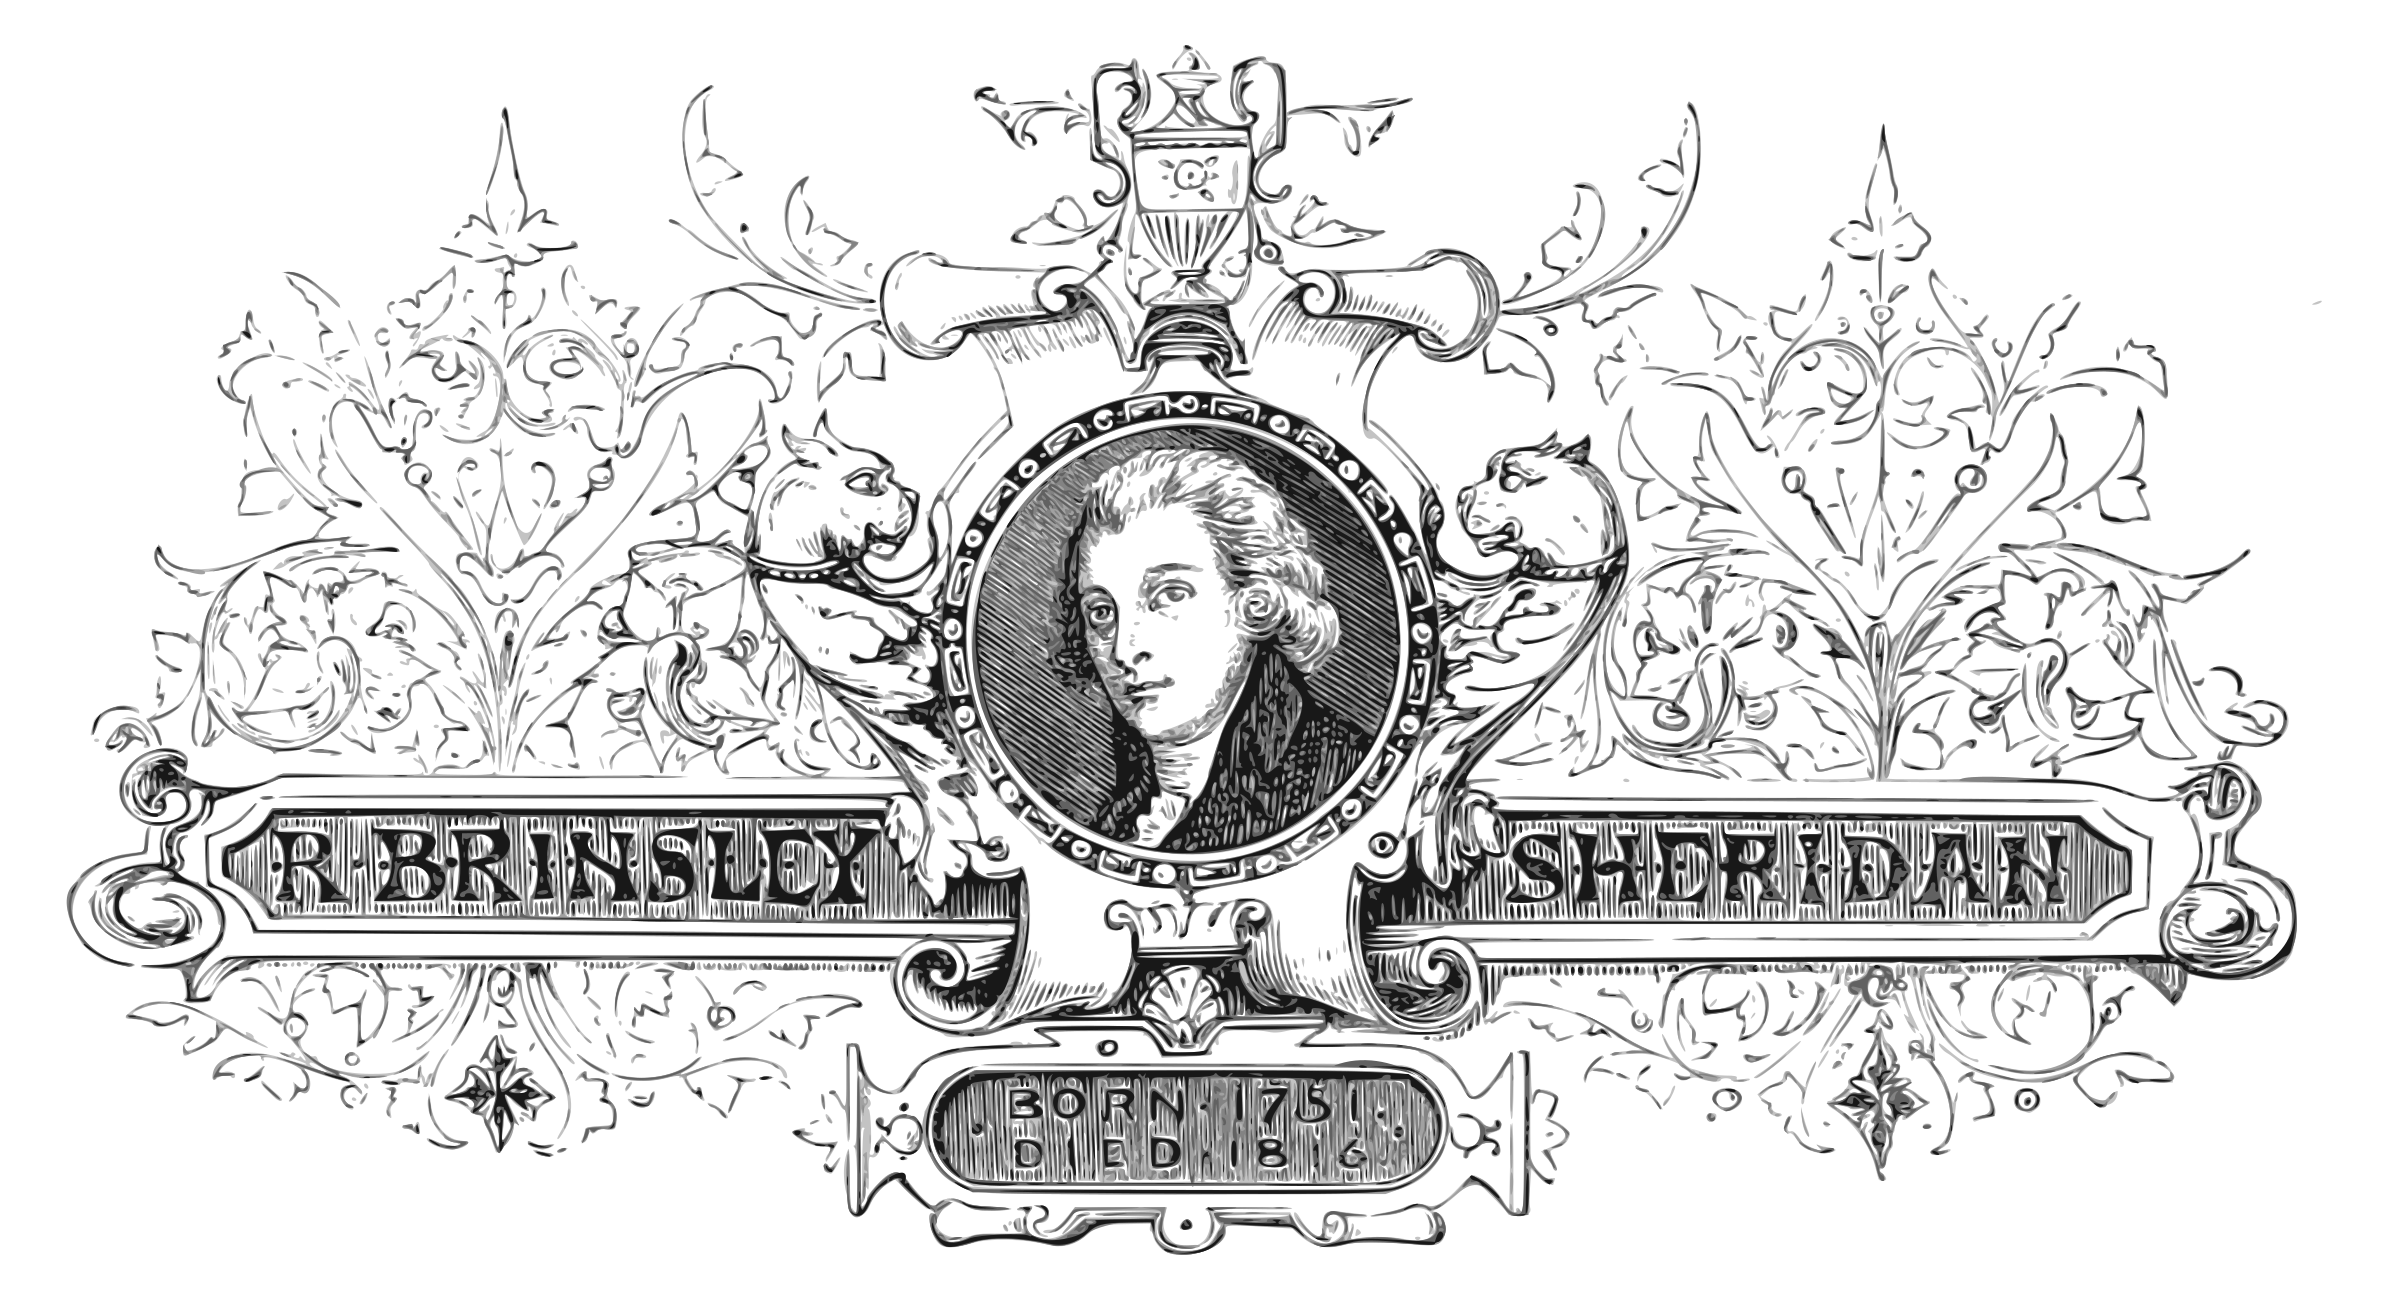 R. Brinsley Sheridan by Firkin